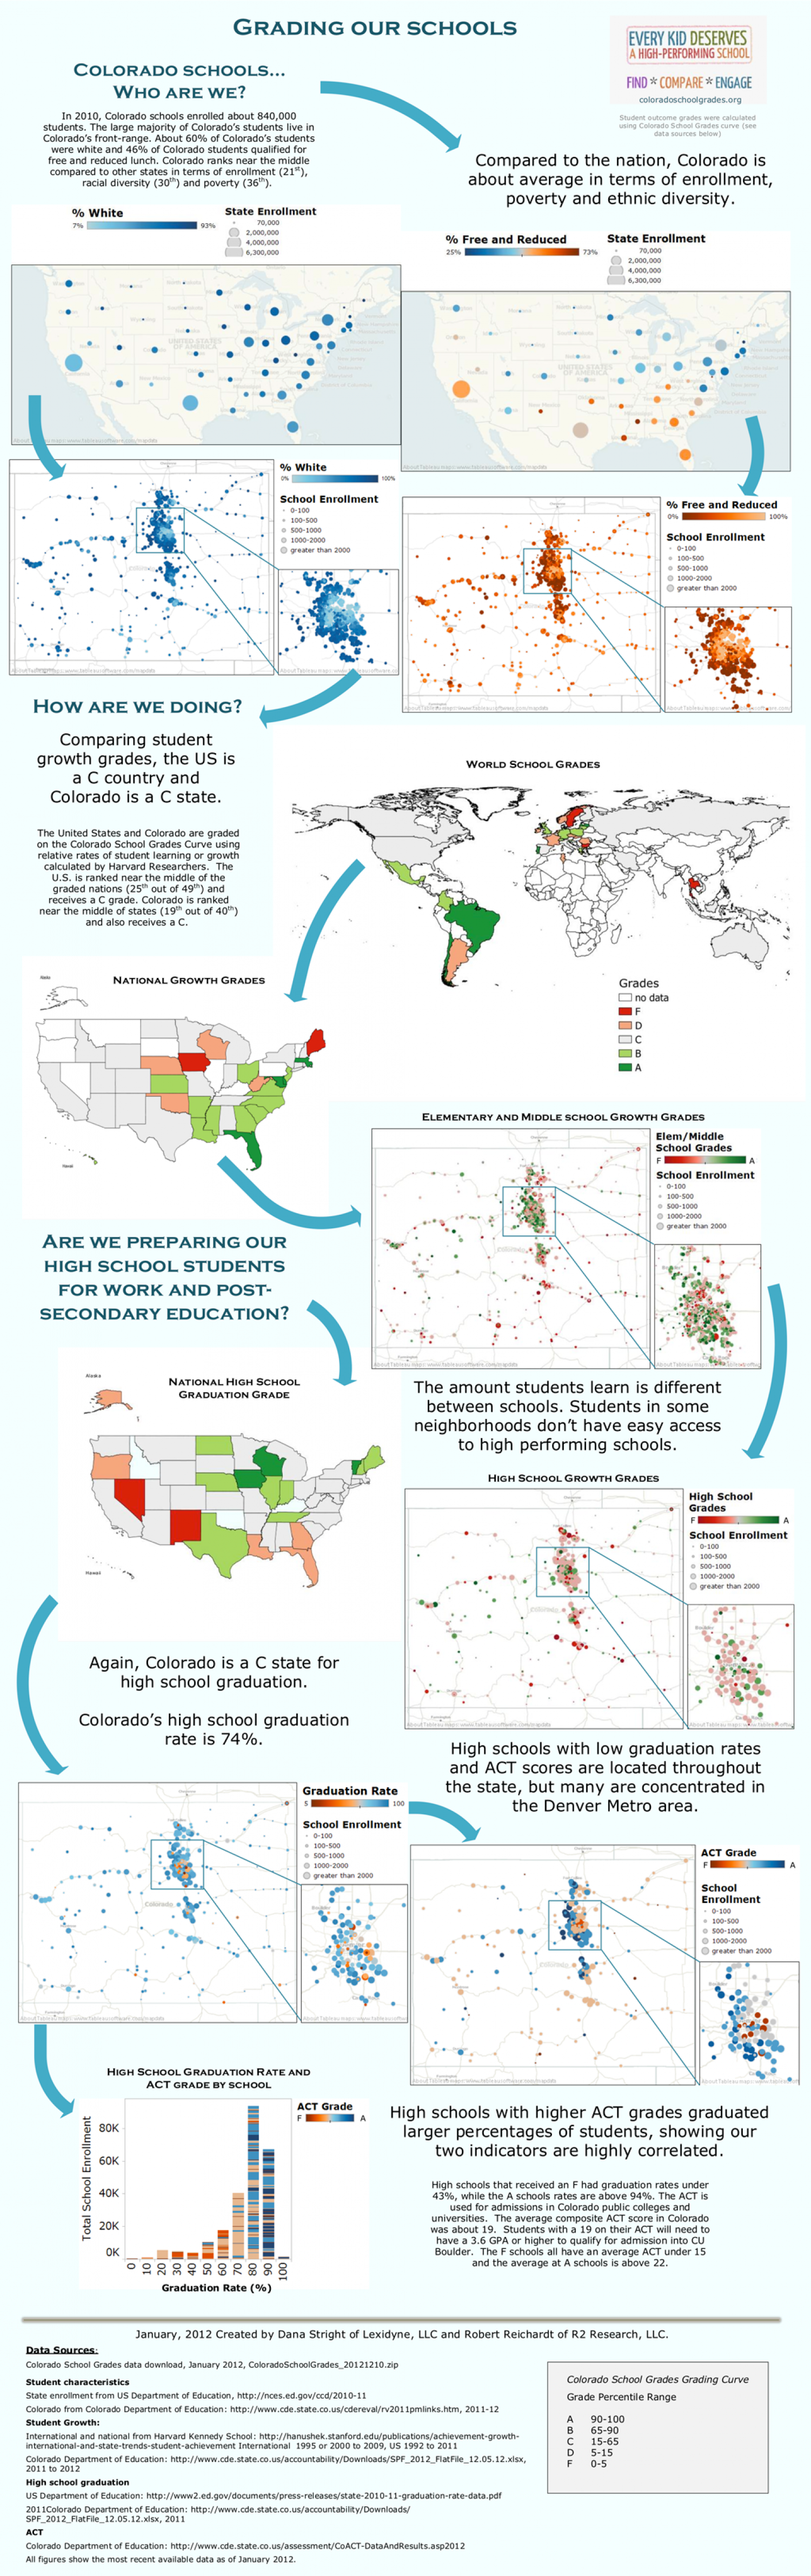 Grading Our Schools Infographic